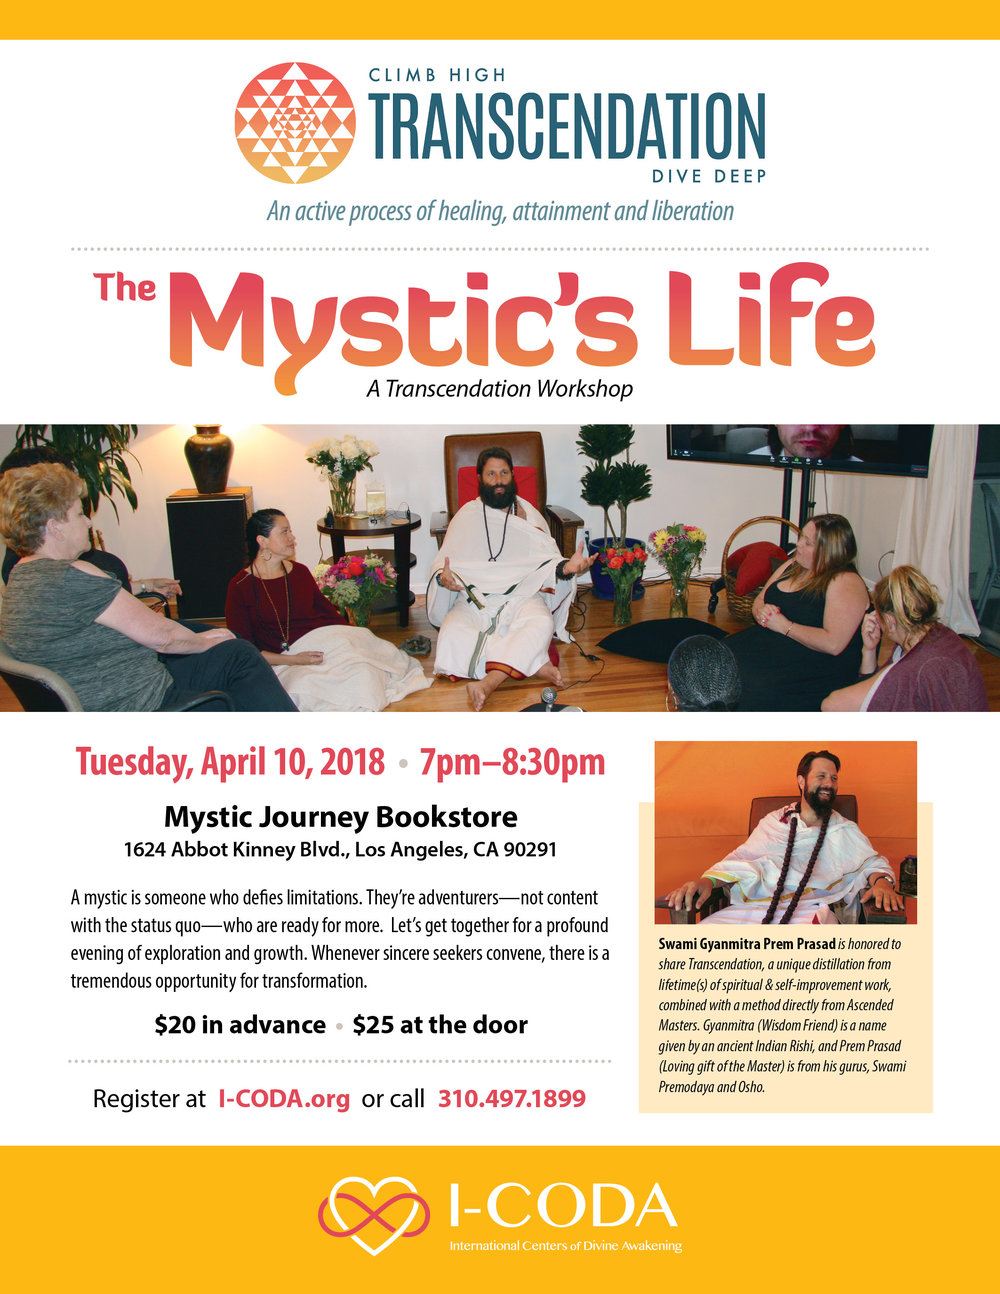 The Mystics Life Flyer 022718 FOR EMAIL.jpg